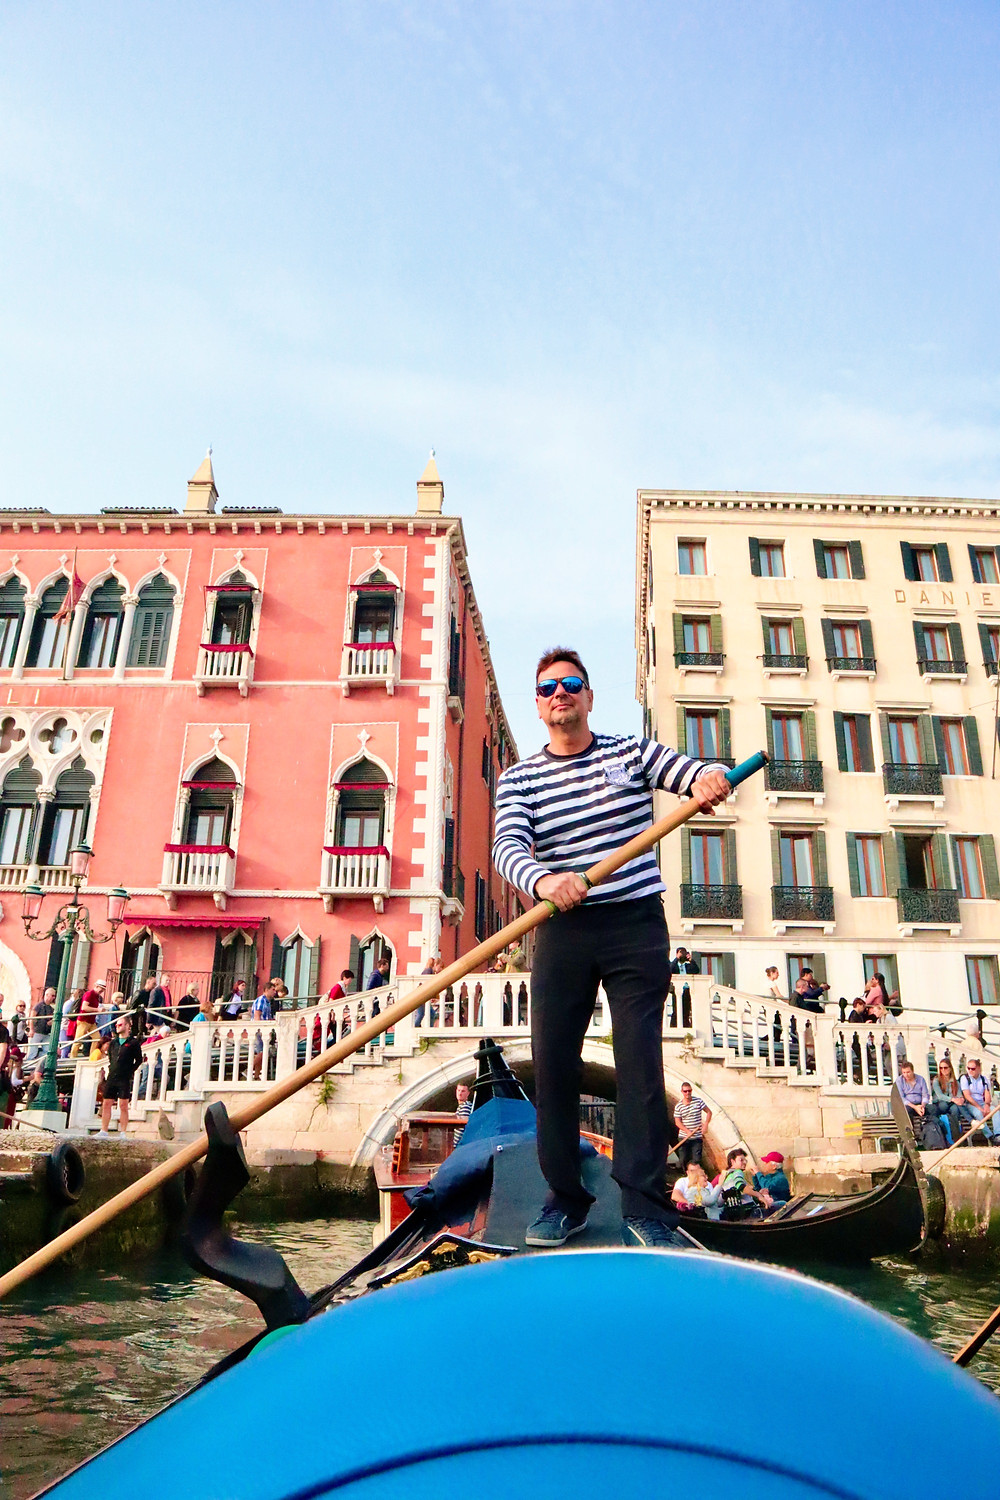 Gondolier in Venice, Italy by Biteinerary